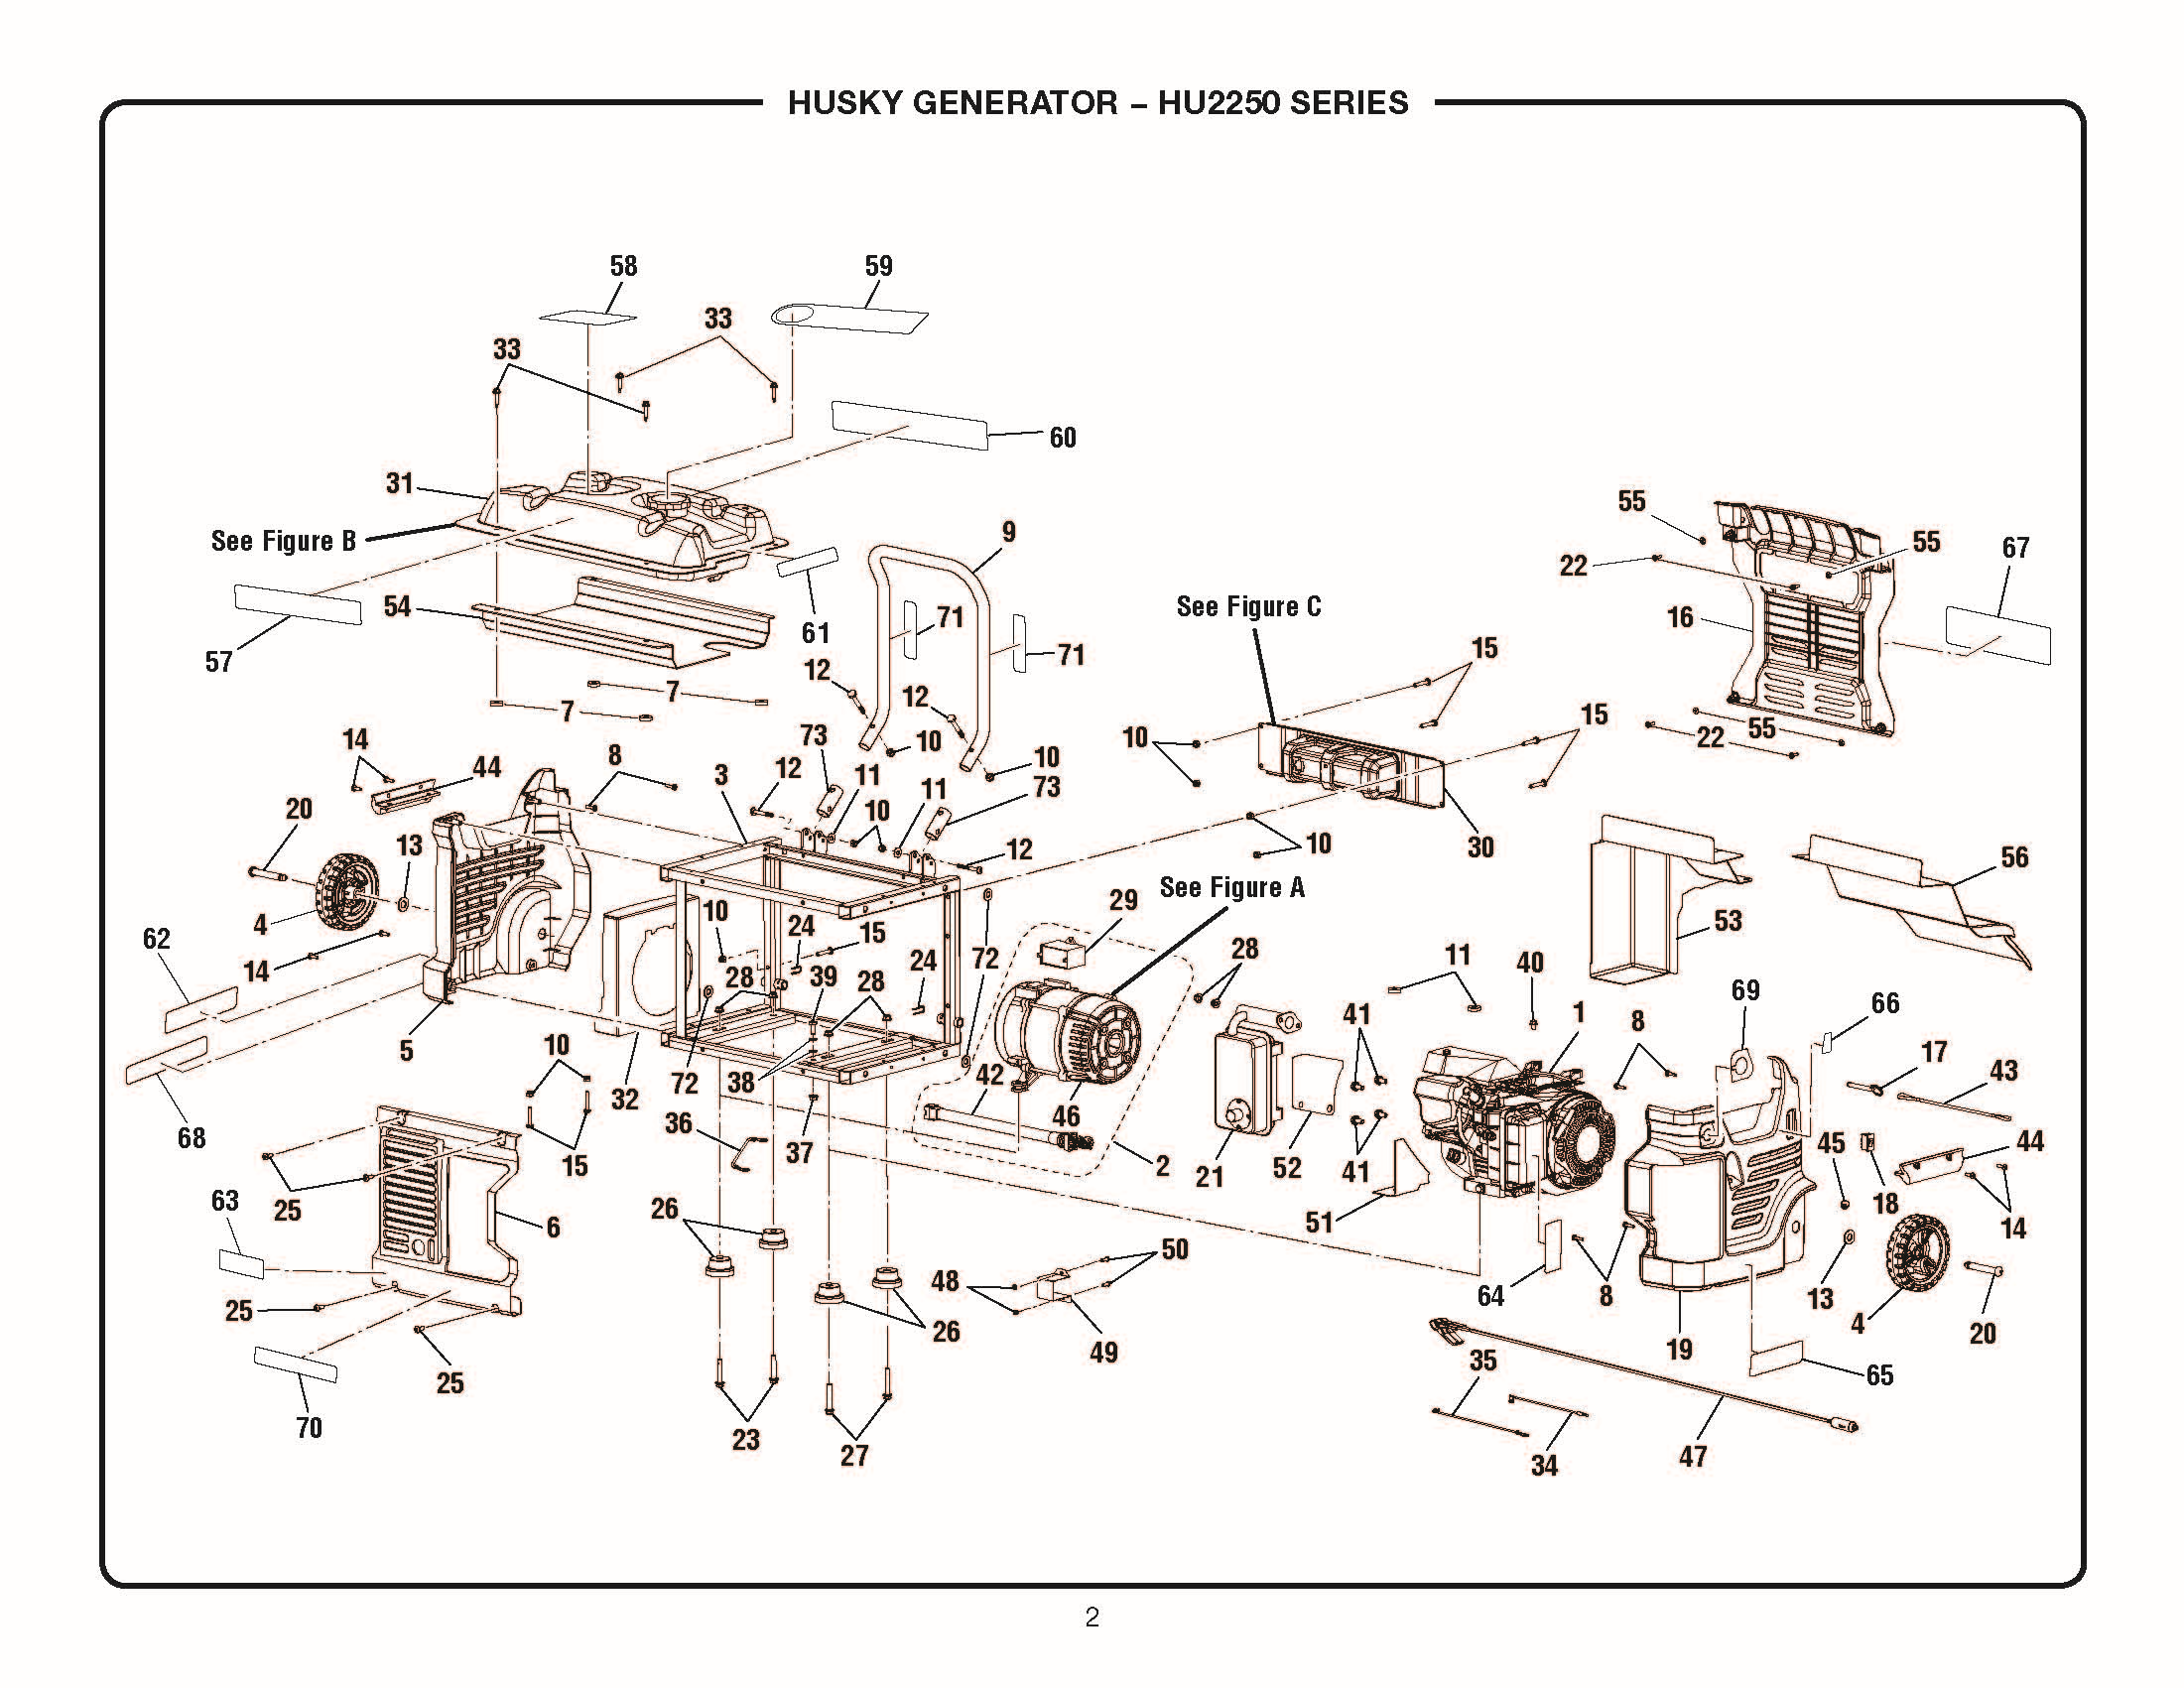 HU2250_frame_schematic husky hu2250 repair parts husky 5000 watt generator wiring diagram at readyjetset.co